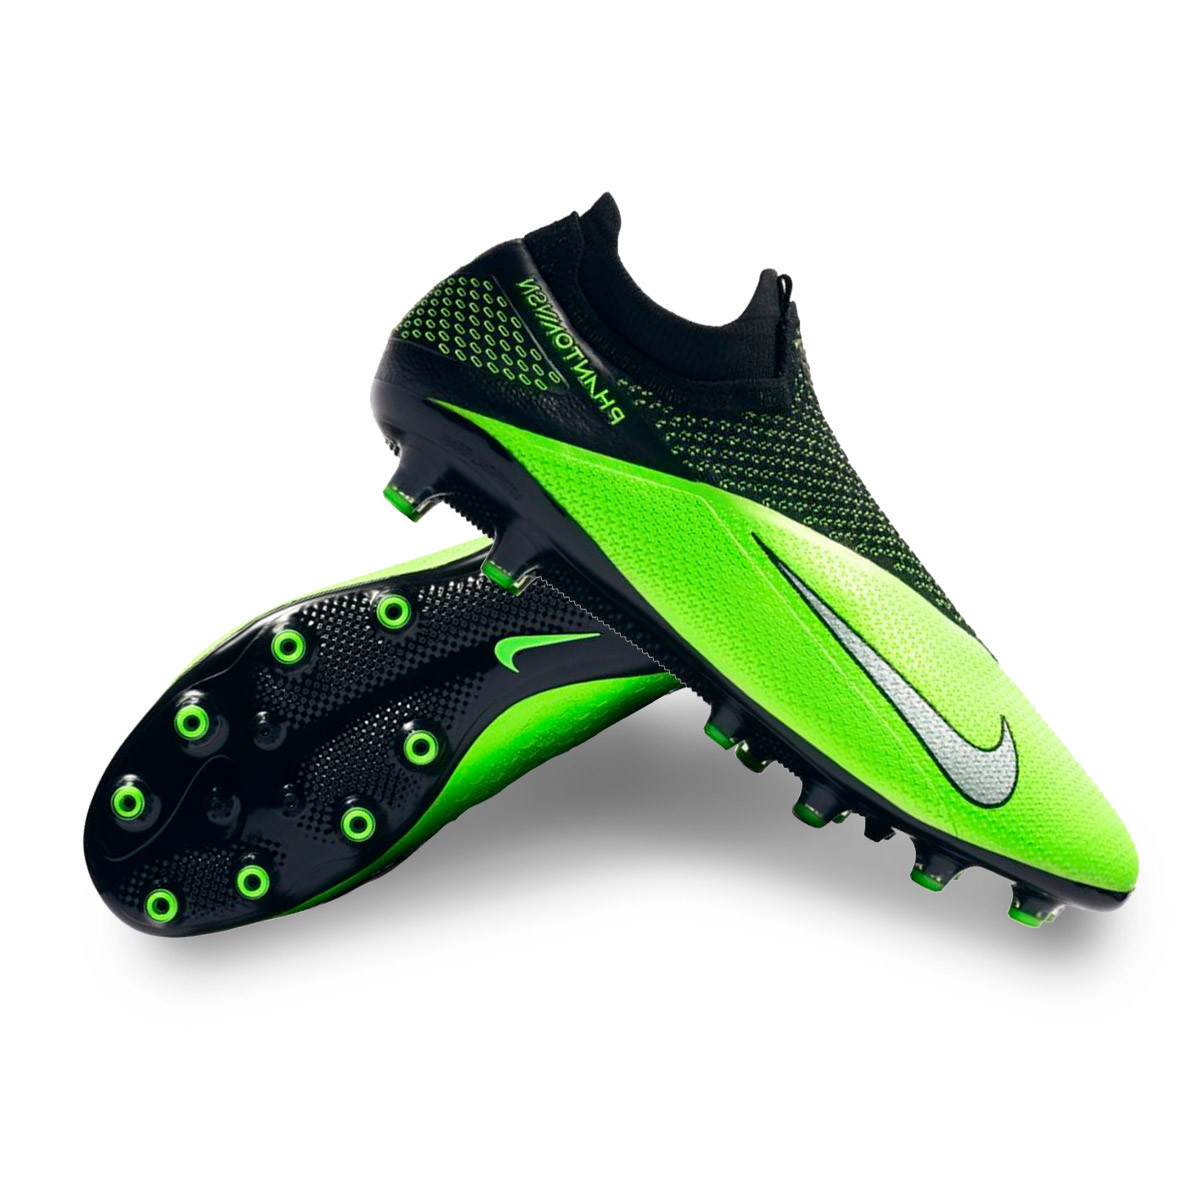 Chaussure de foot Nike Phantom Vision II Elite DF AG PRO